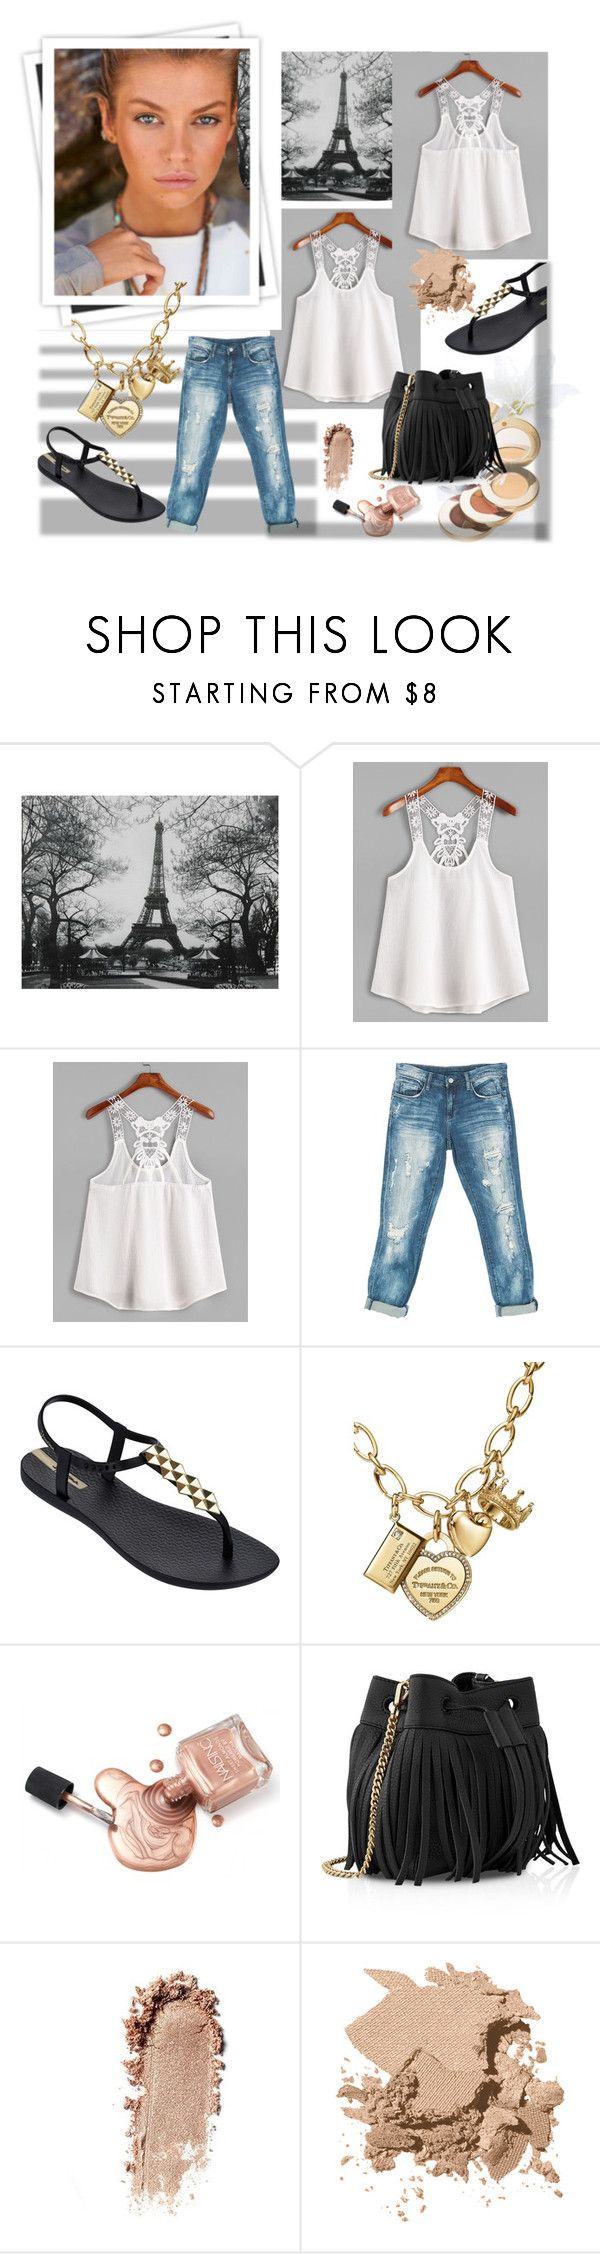 """White Contrast Lace Crochet Cami Top"" by marija-1987 ❤ liked on Polyvore featuring WALL, GALA, Sans Souci, IPANEMA, Tiffany & Co., Jane Iredale, Whistles and Bobbi Brown Cosmetics"